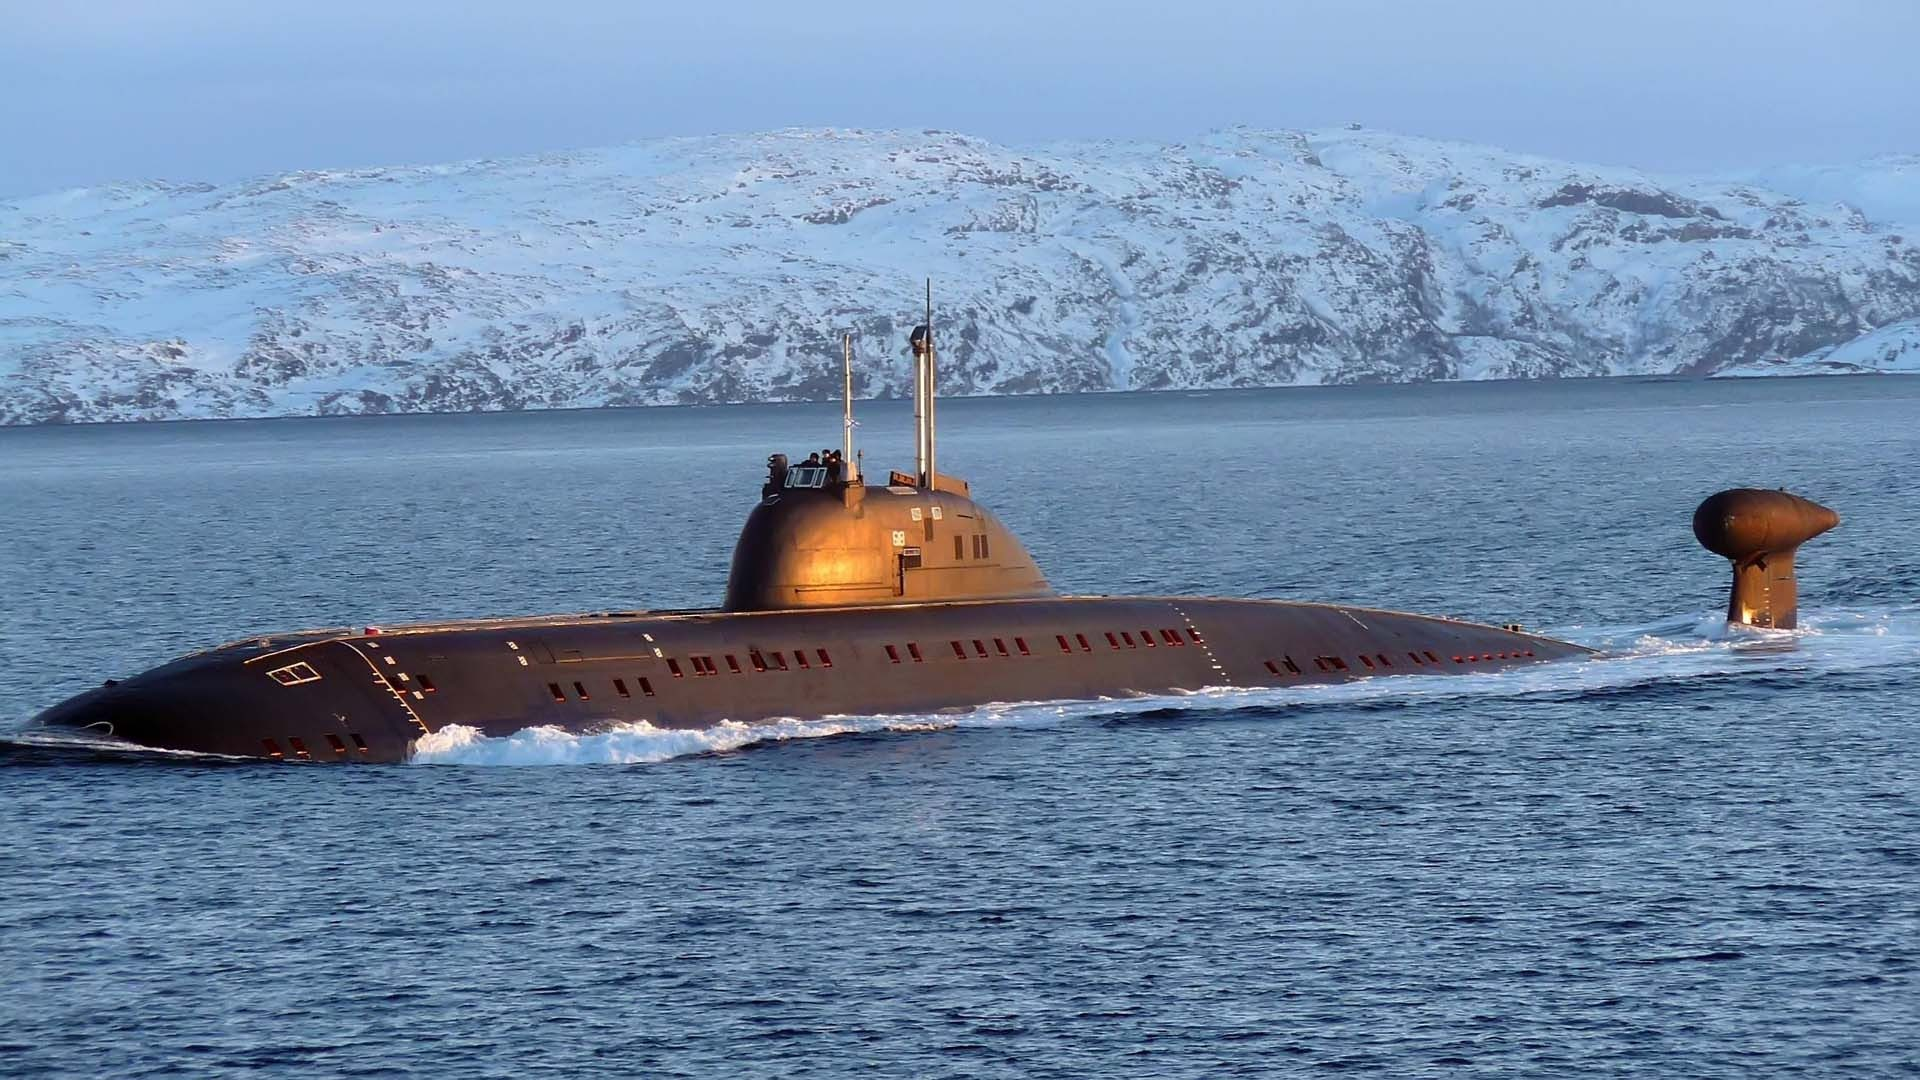 Best wallpaper of u-boat, wallpaper of submarine in the ...